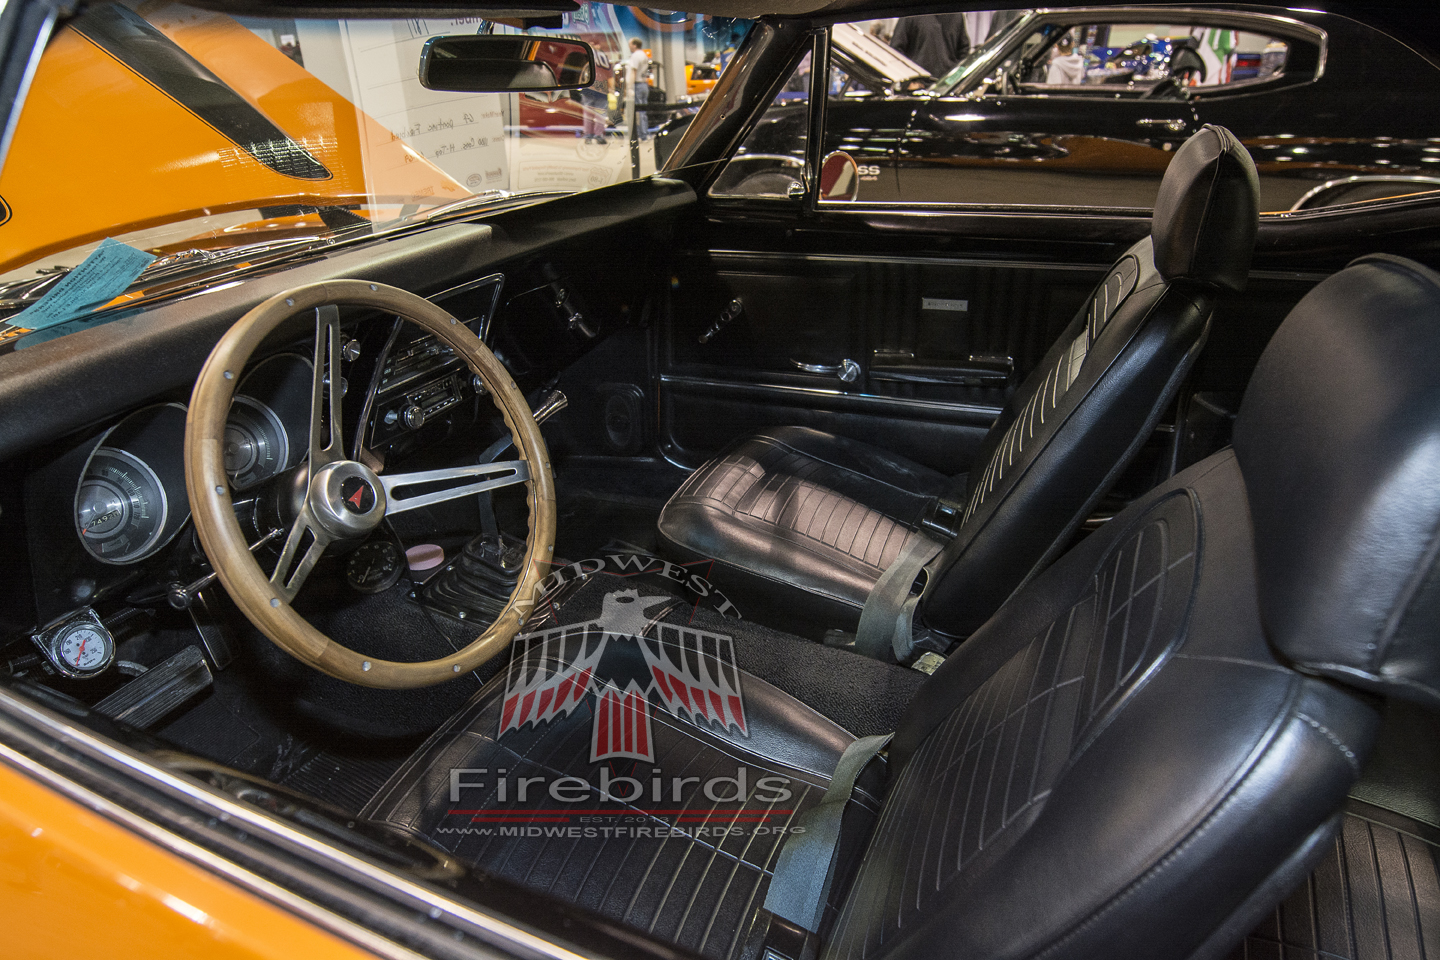 67 Firebird Interior Images Galleries With A Bite